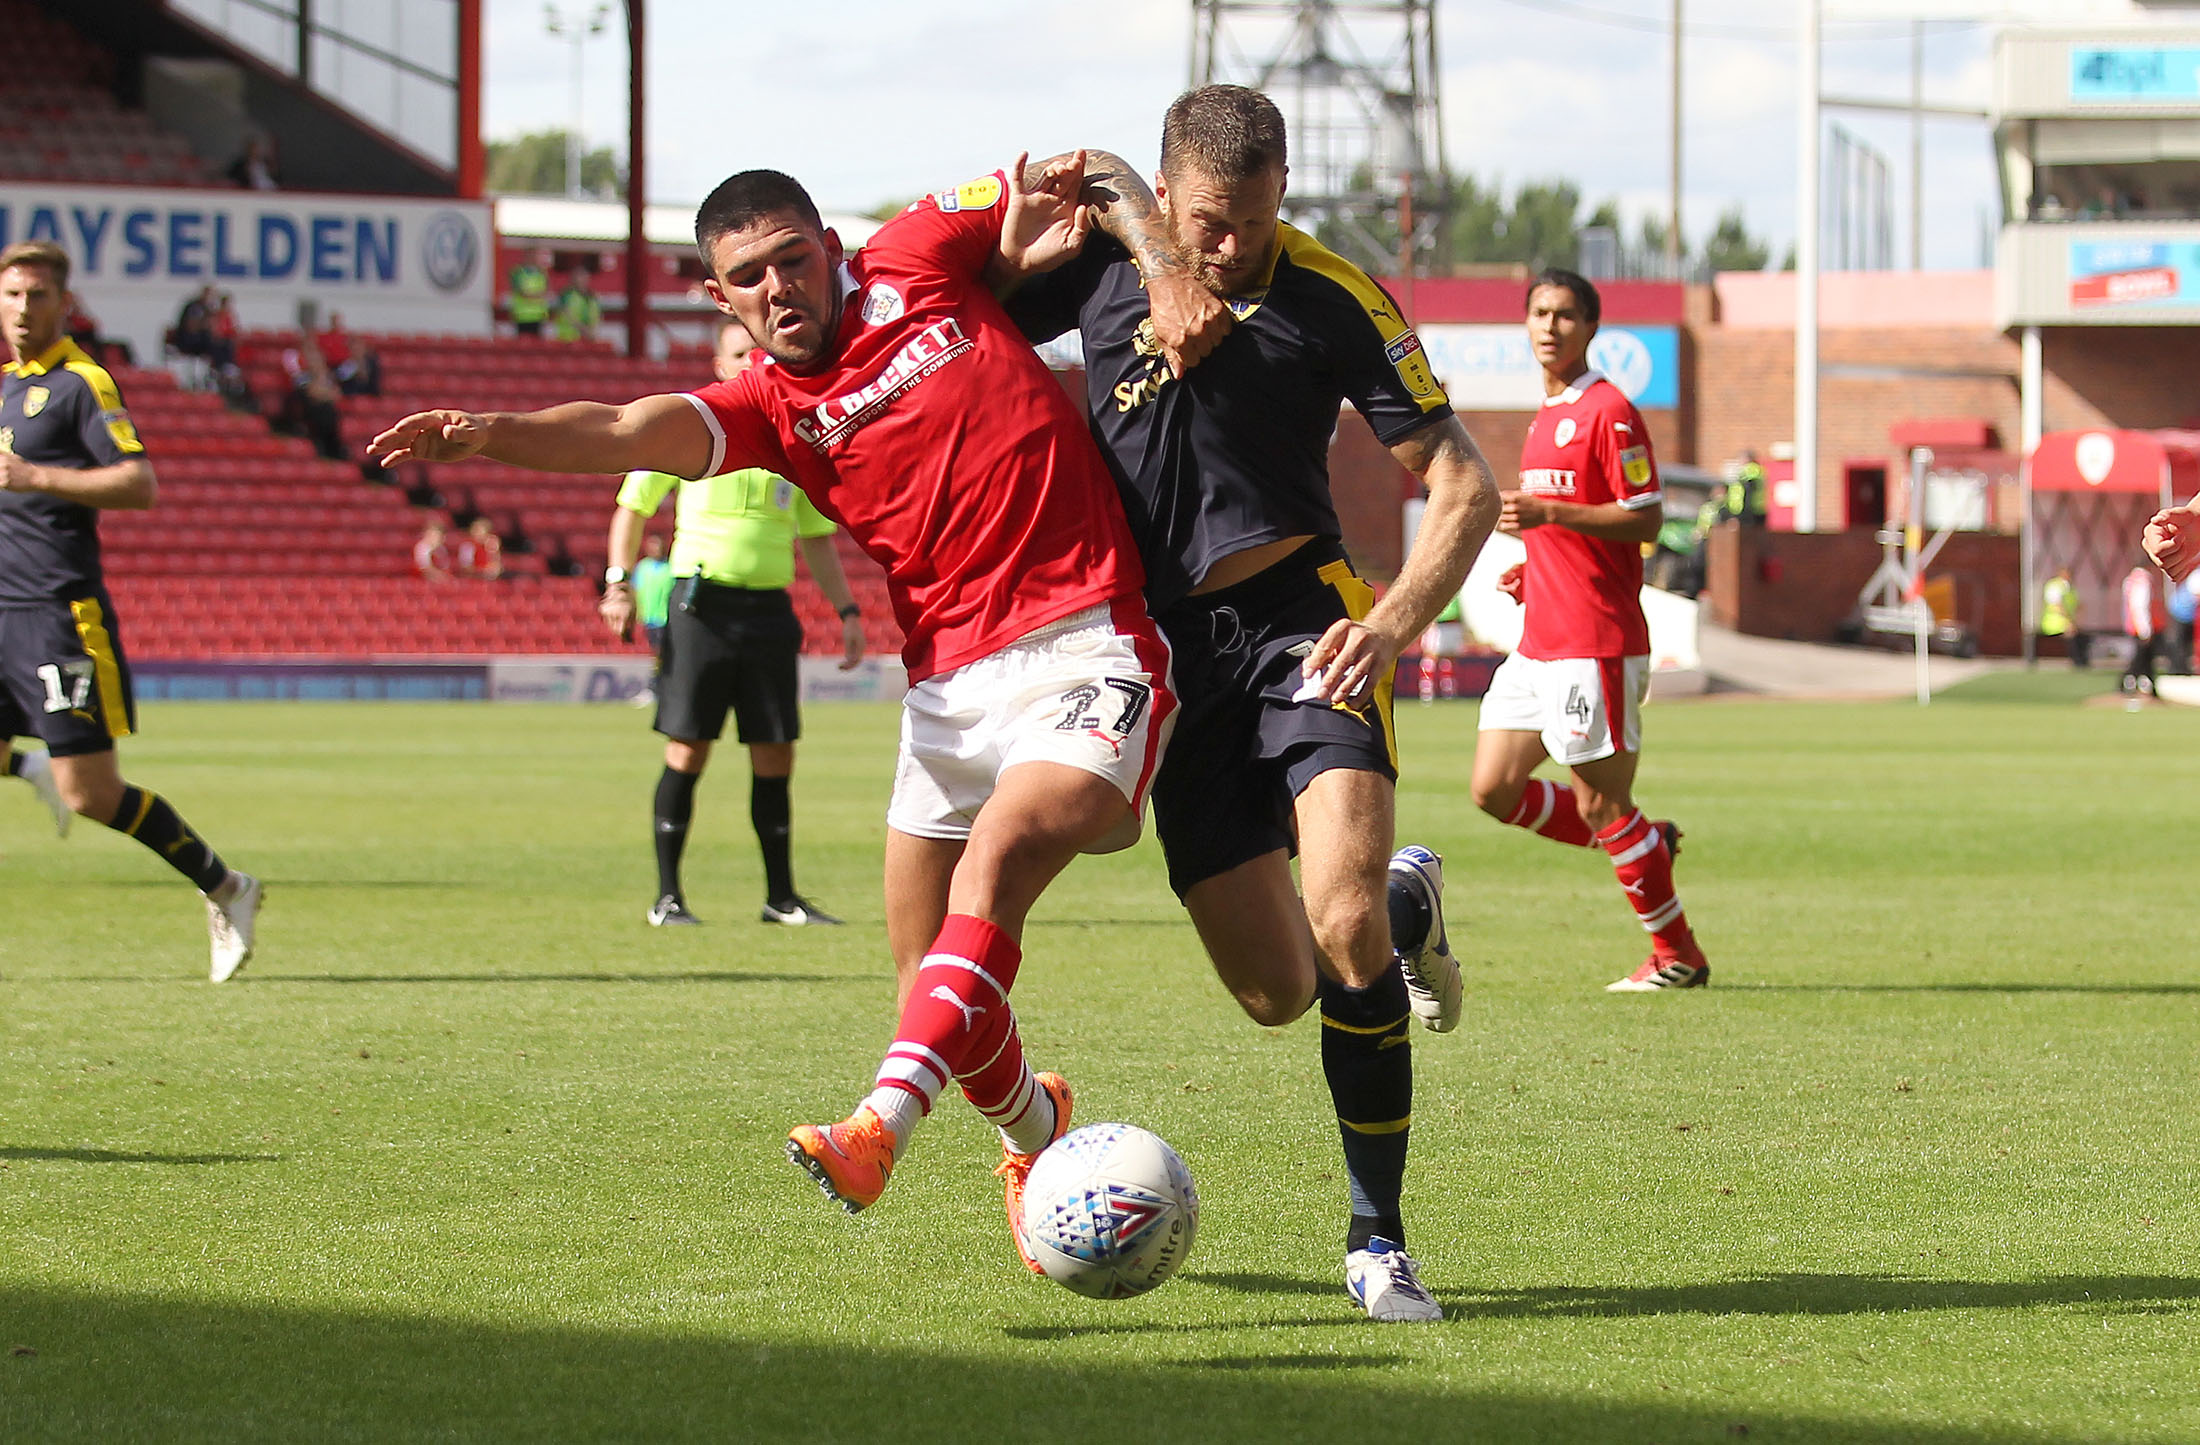 Former Oxford United loanee Alex Mowatt (left) battles with Jamie Mackie during the meeting at Barnsley on the opening day of the season  Picture: Richard Parkes